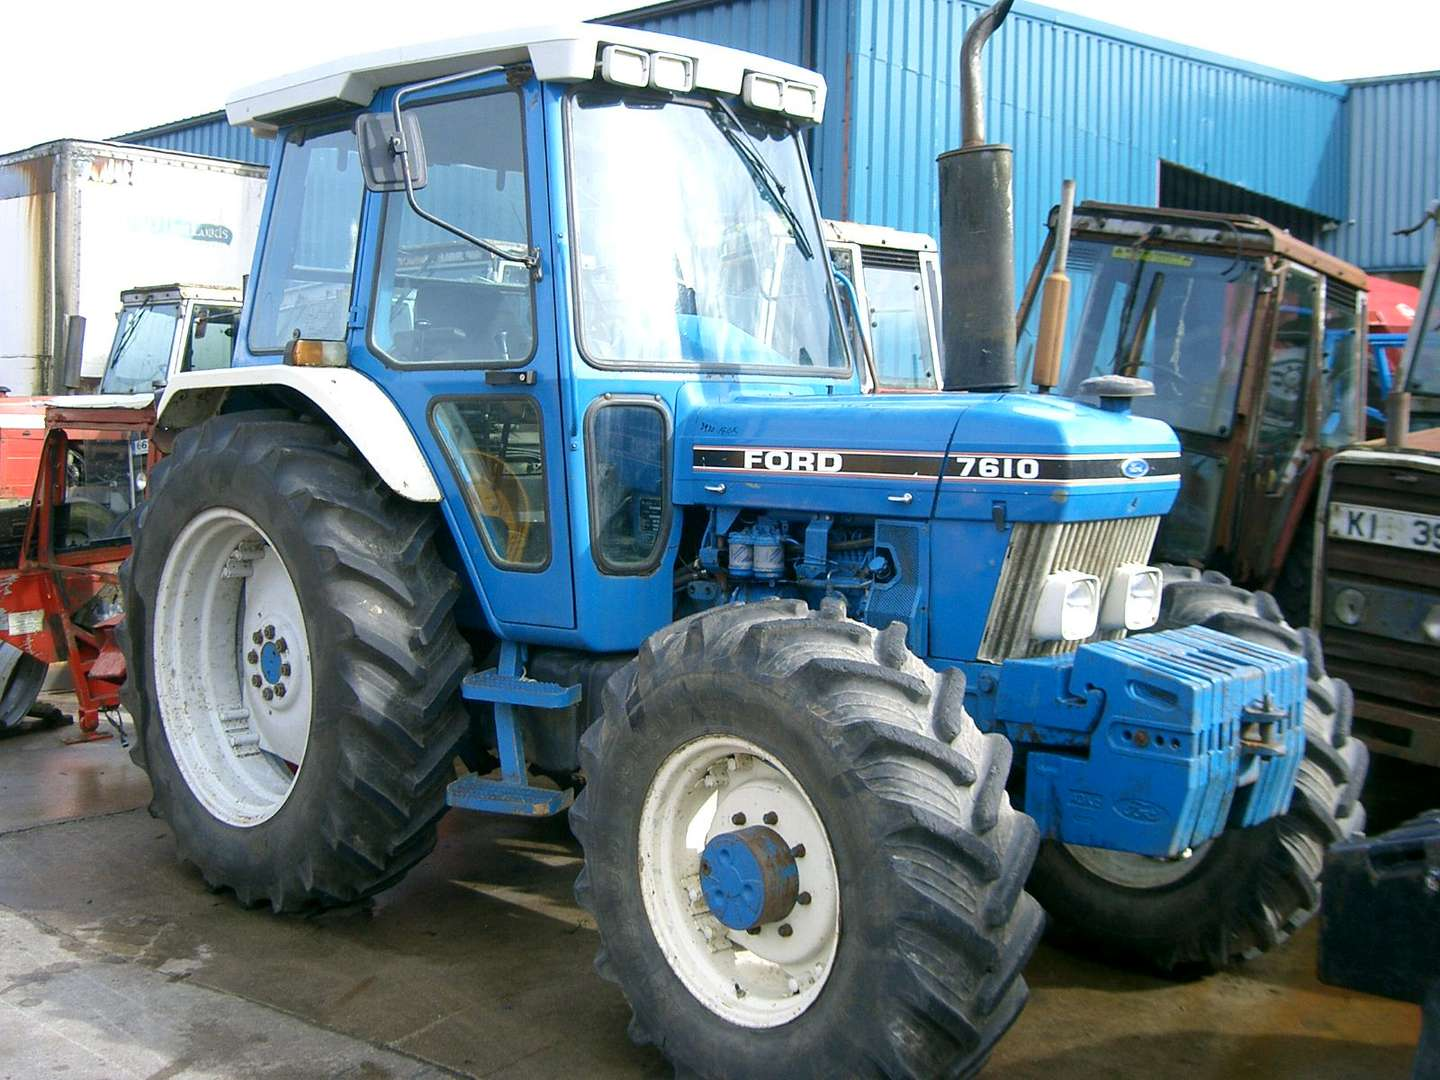 Ford 7610 #9656894